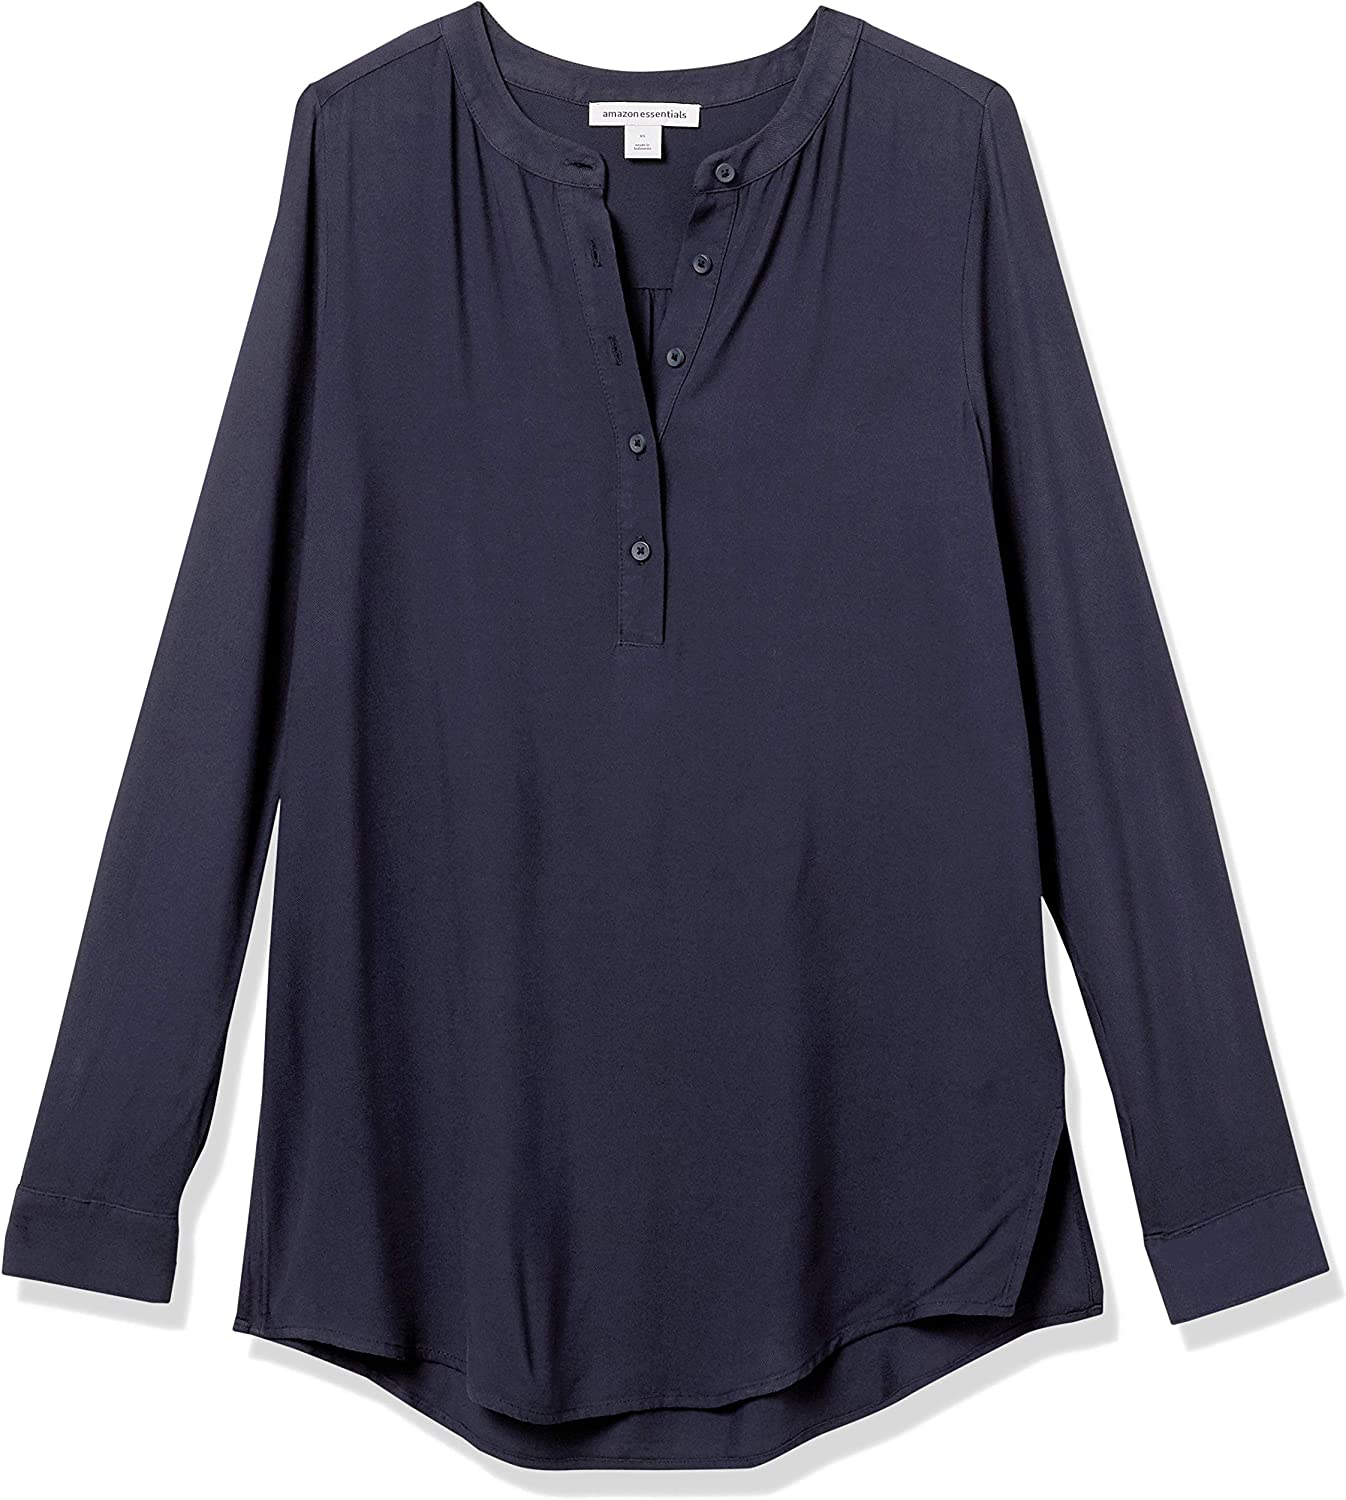 Dress-Shirts Donna Essentials Camicetta in Tessuto A Maniche Lunghe